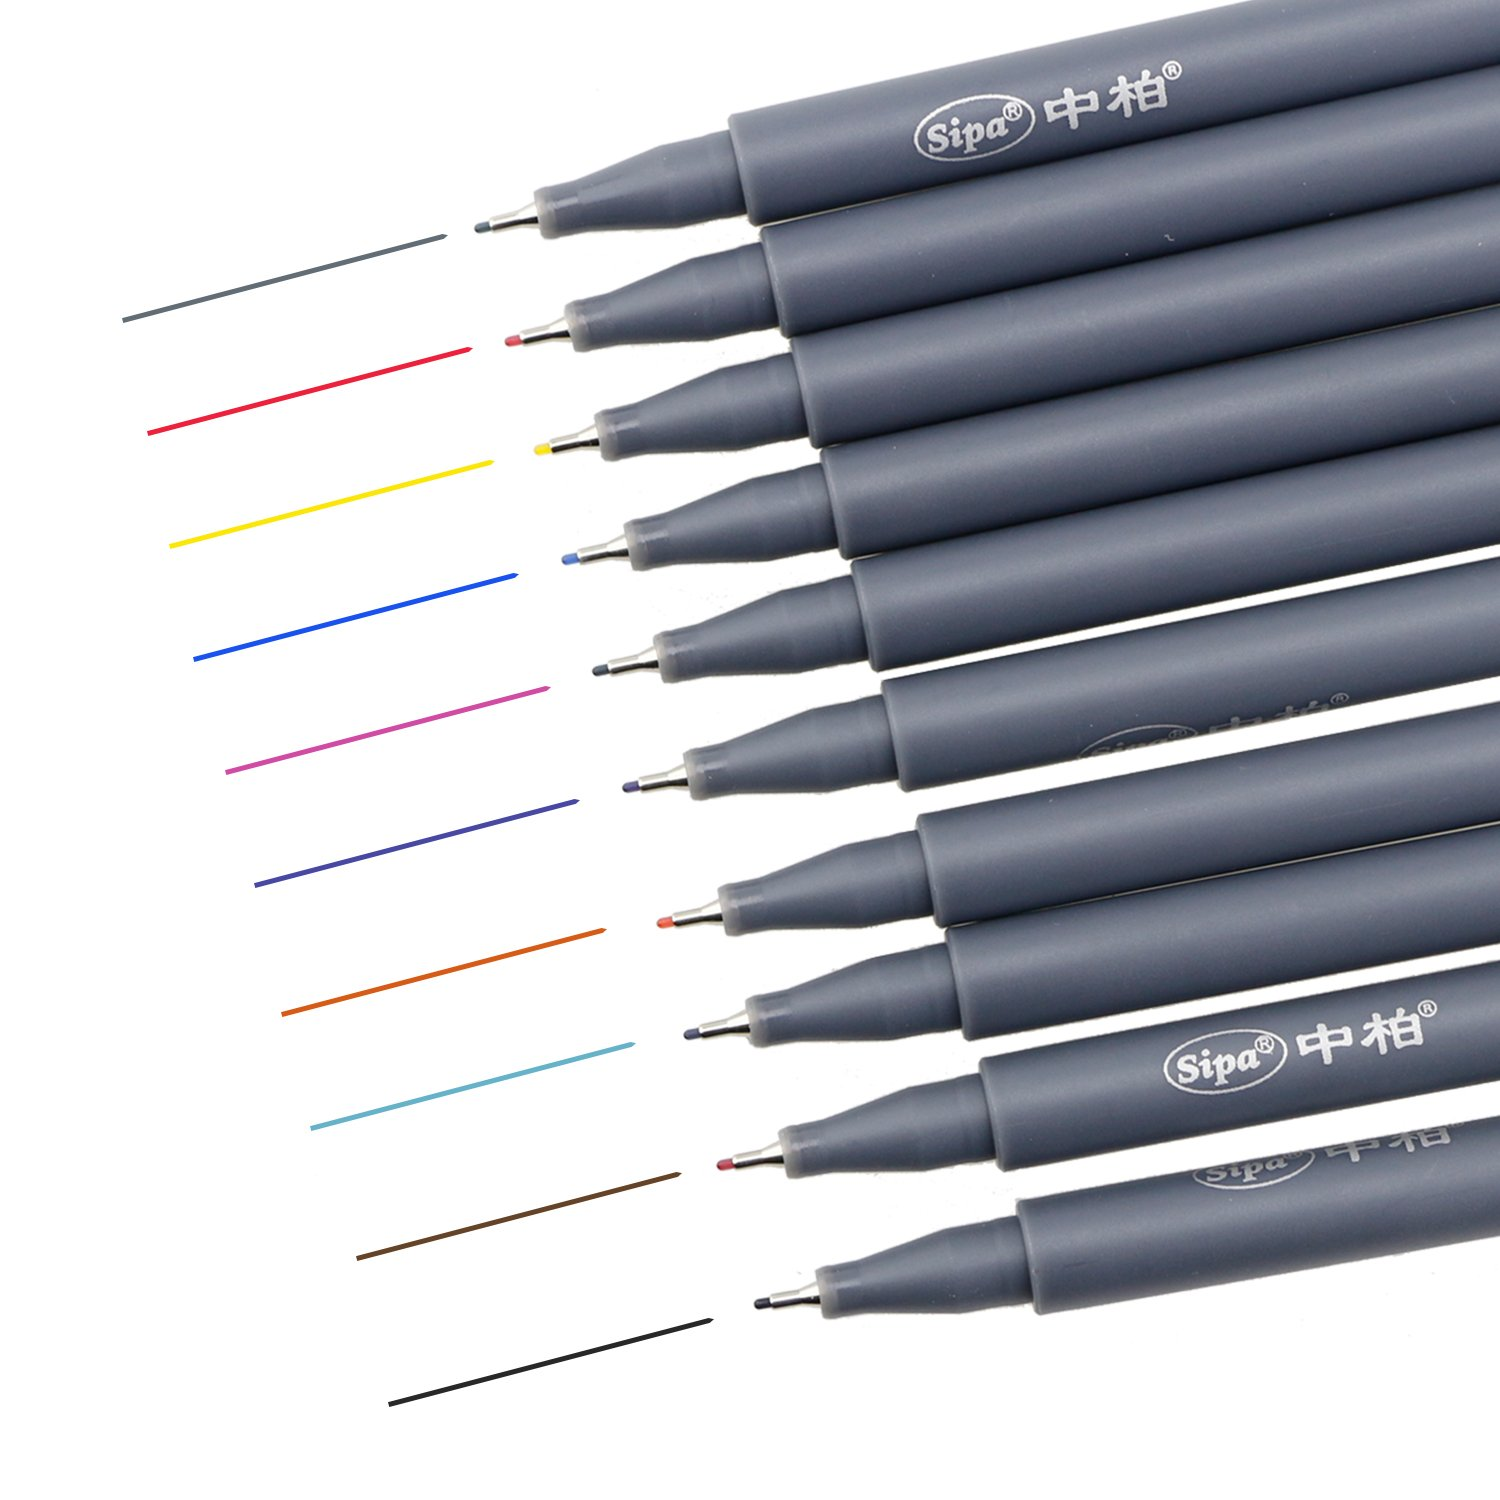 10 Assorted Colors FineLiner Drawing Pen, 0.38mm Porous Fine Point Color Pen Set for Adult Coloring, Bullet Journaling, Note Taking Art Projects